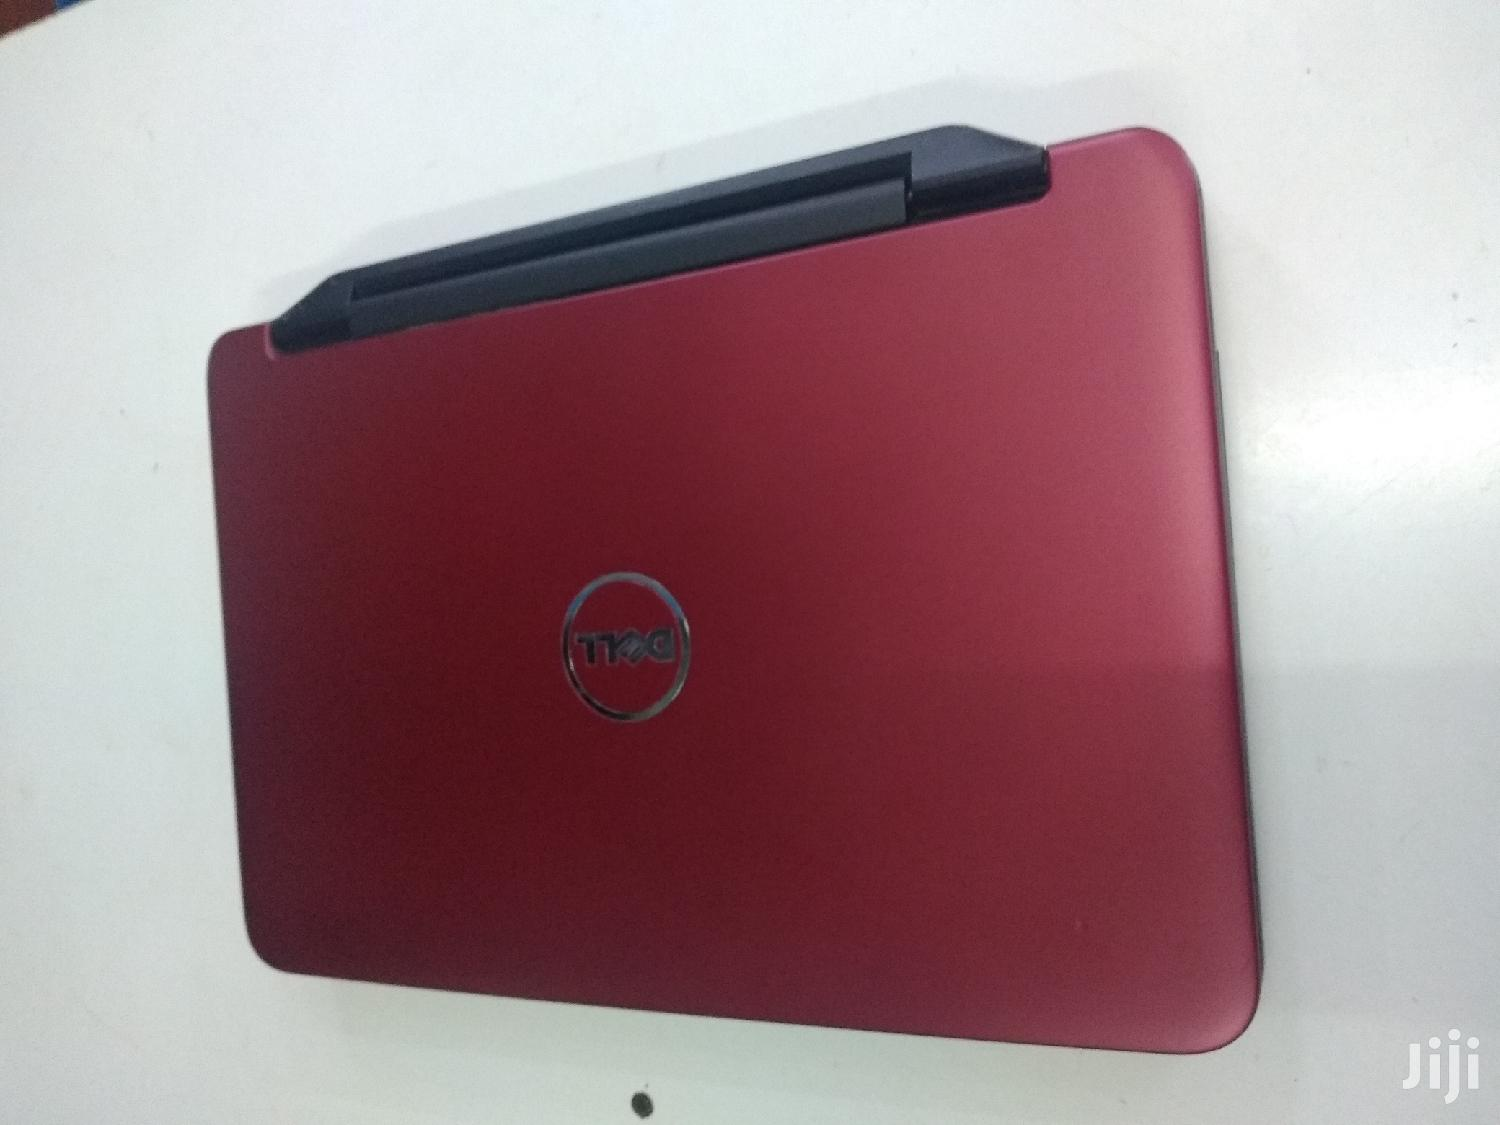 Laptop Dell Inspiron 3443 4GB Intel Core i3 HDD 500GB | Laptops & Computers for sale in Kampala, Central Region, Uganda